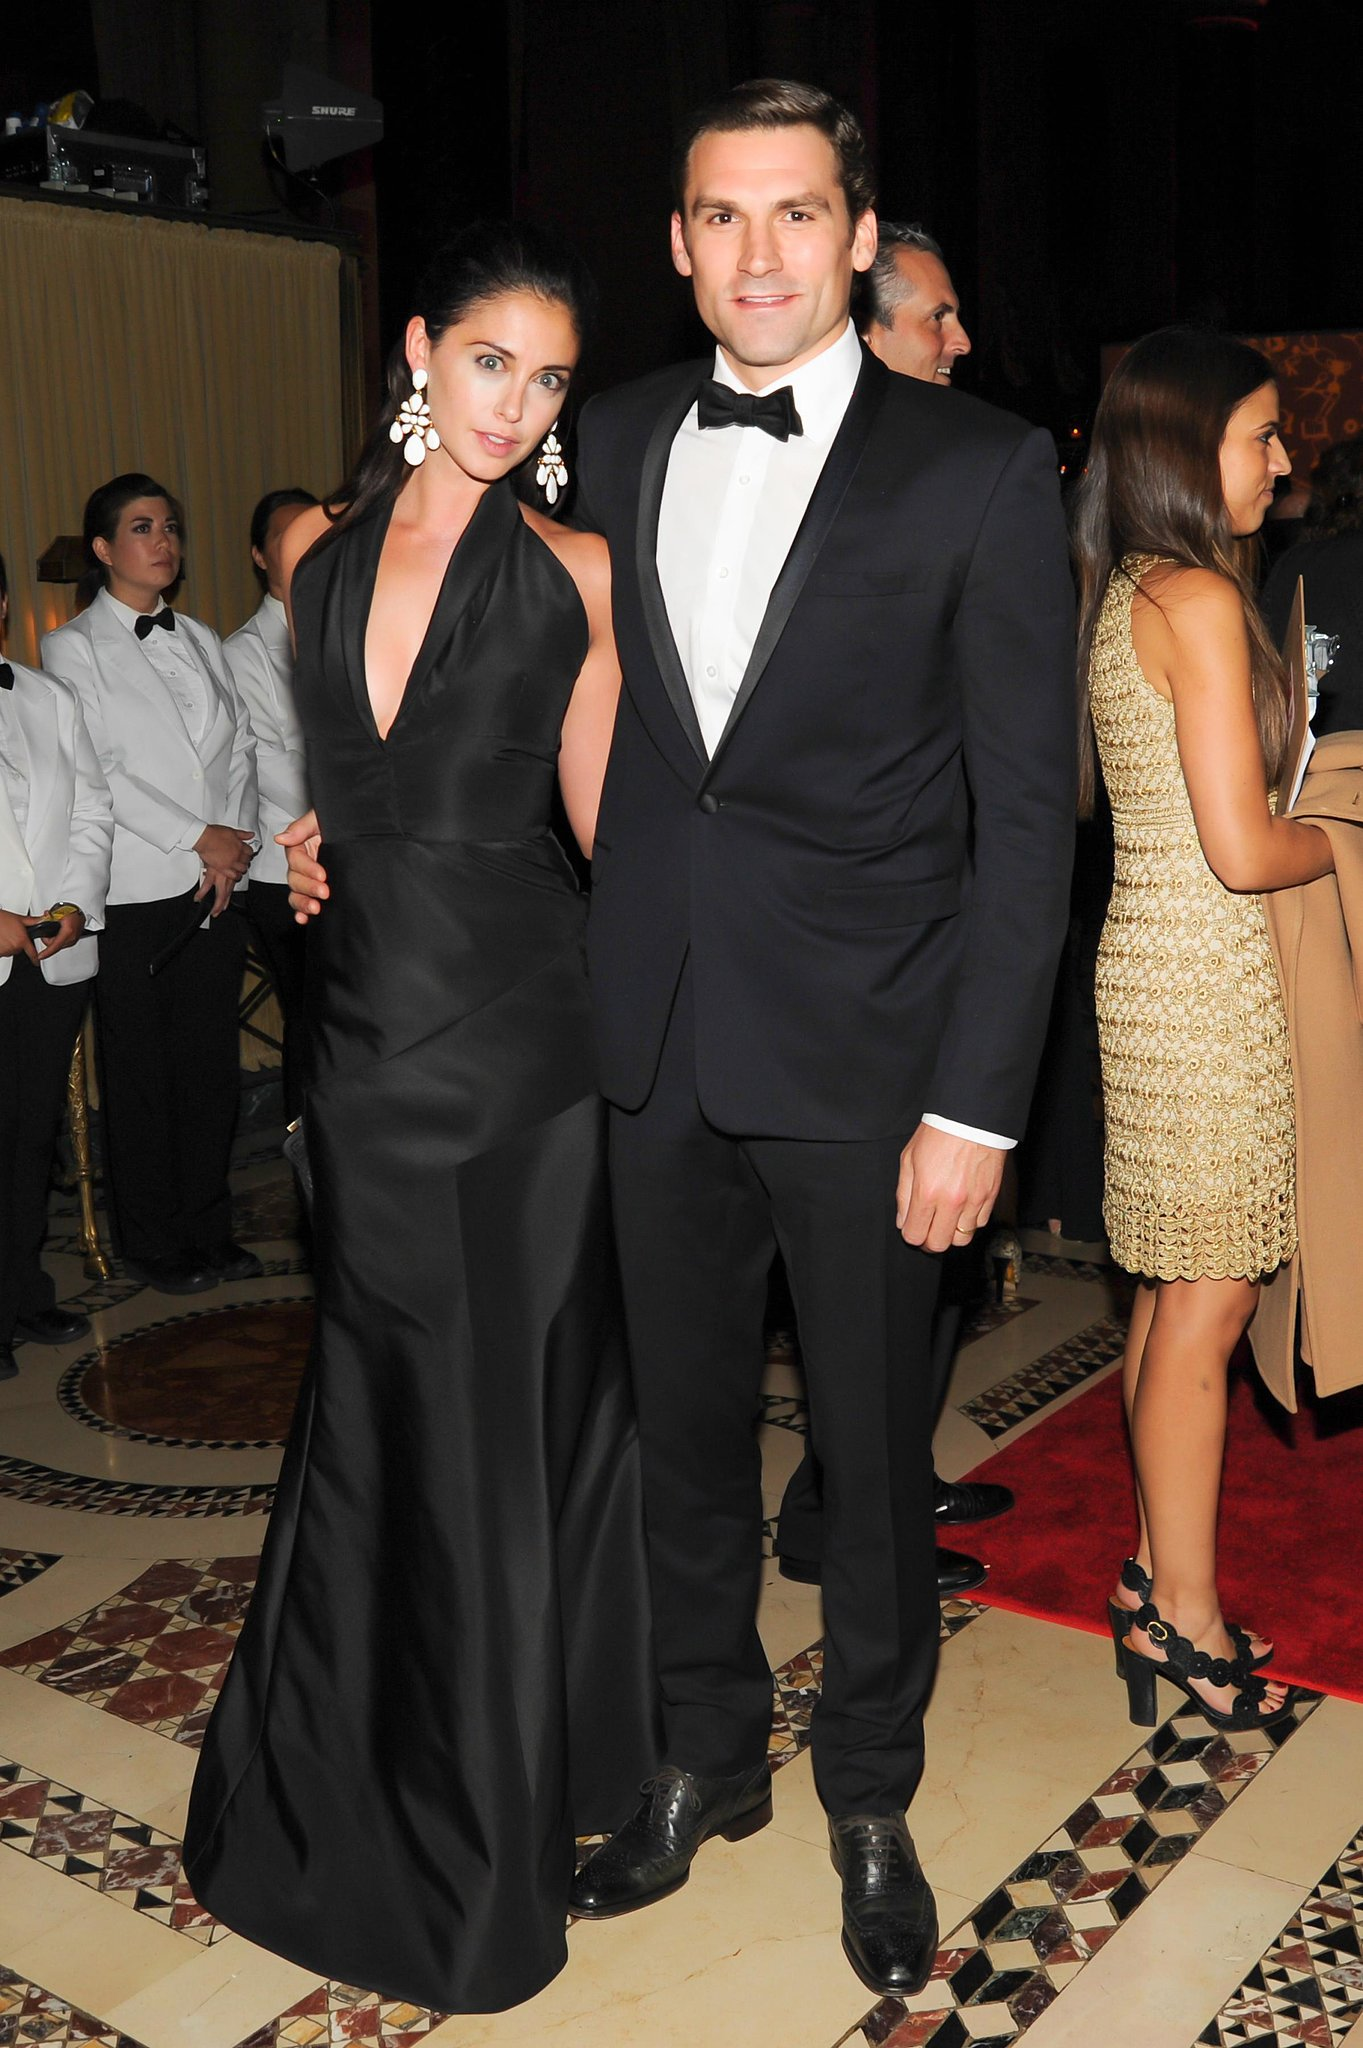 Erika and Jonathan Bearman coordinated in black and white at Cipriani for the the New Yorkers for Children Fall Gala.